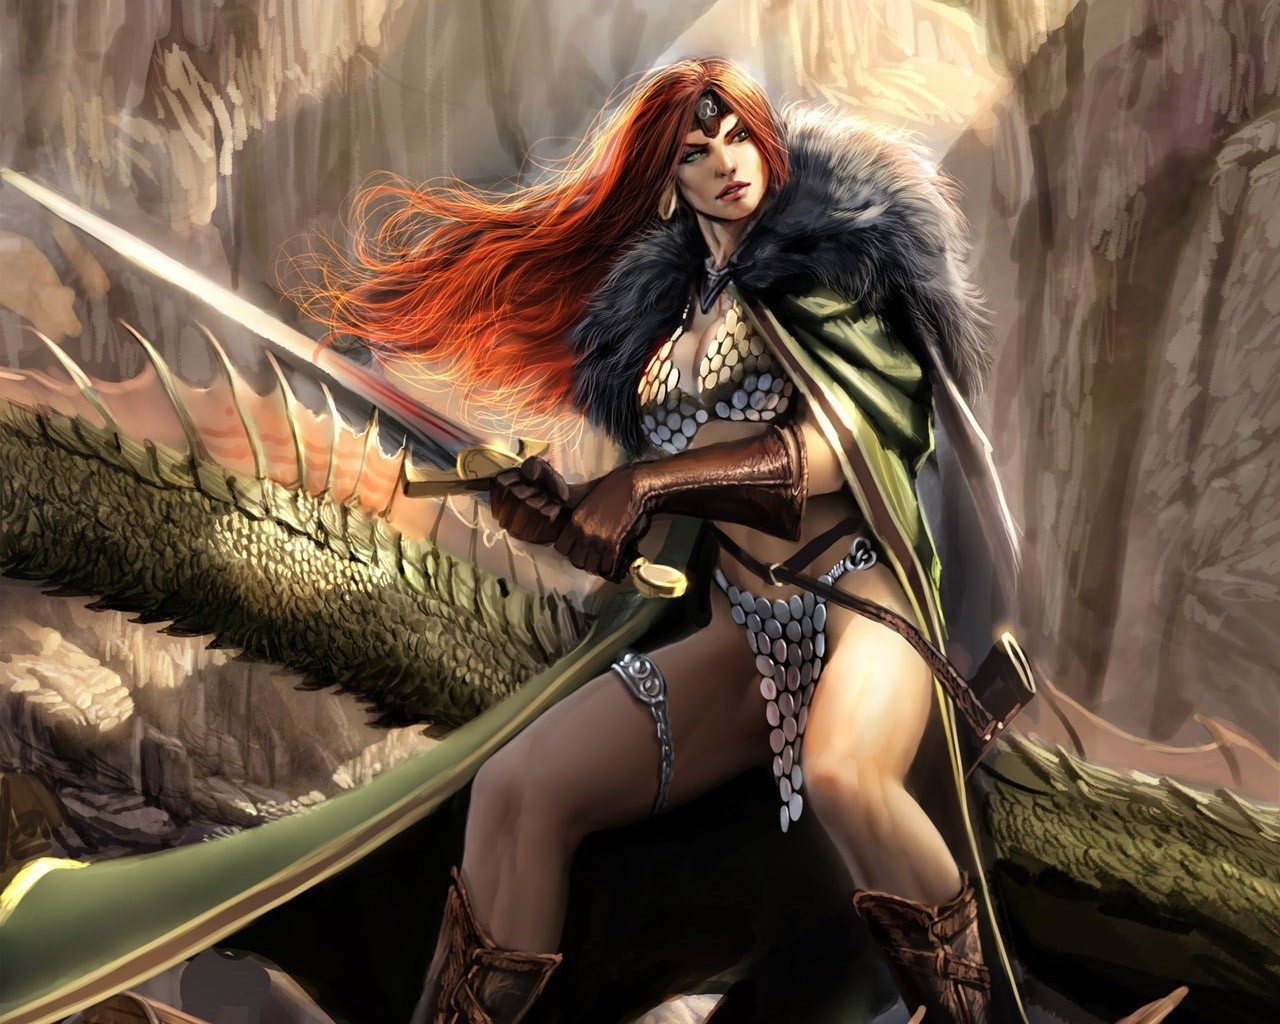 Anime 3d xena warrior princess video erotic images